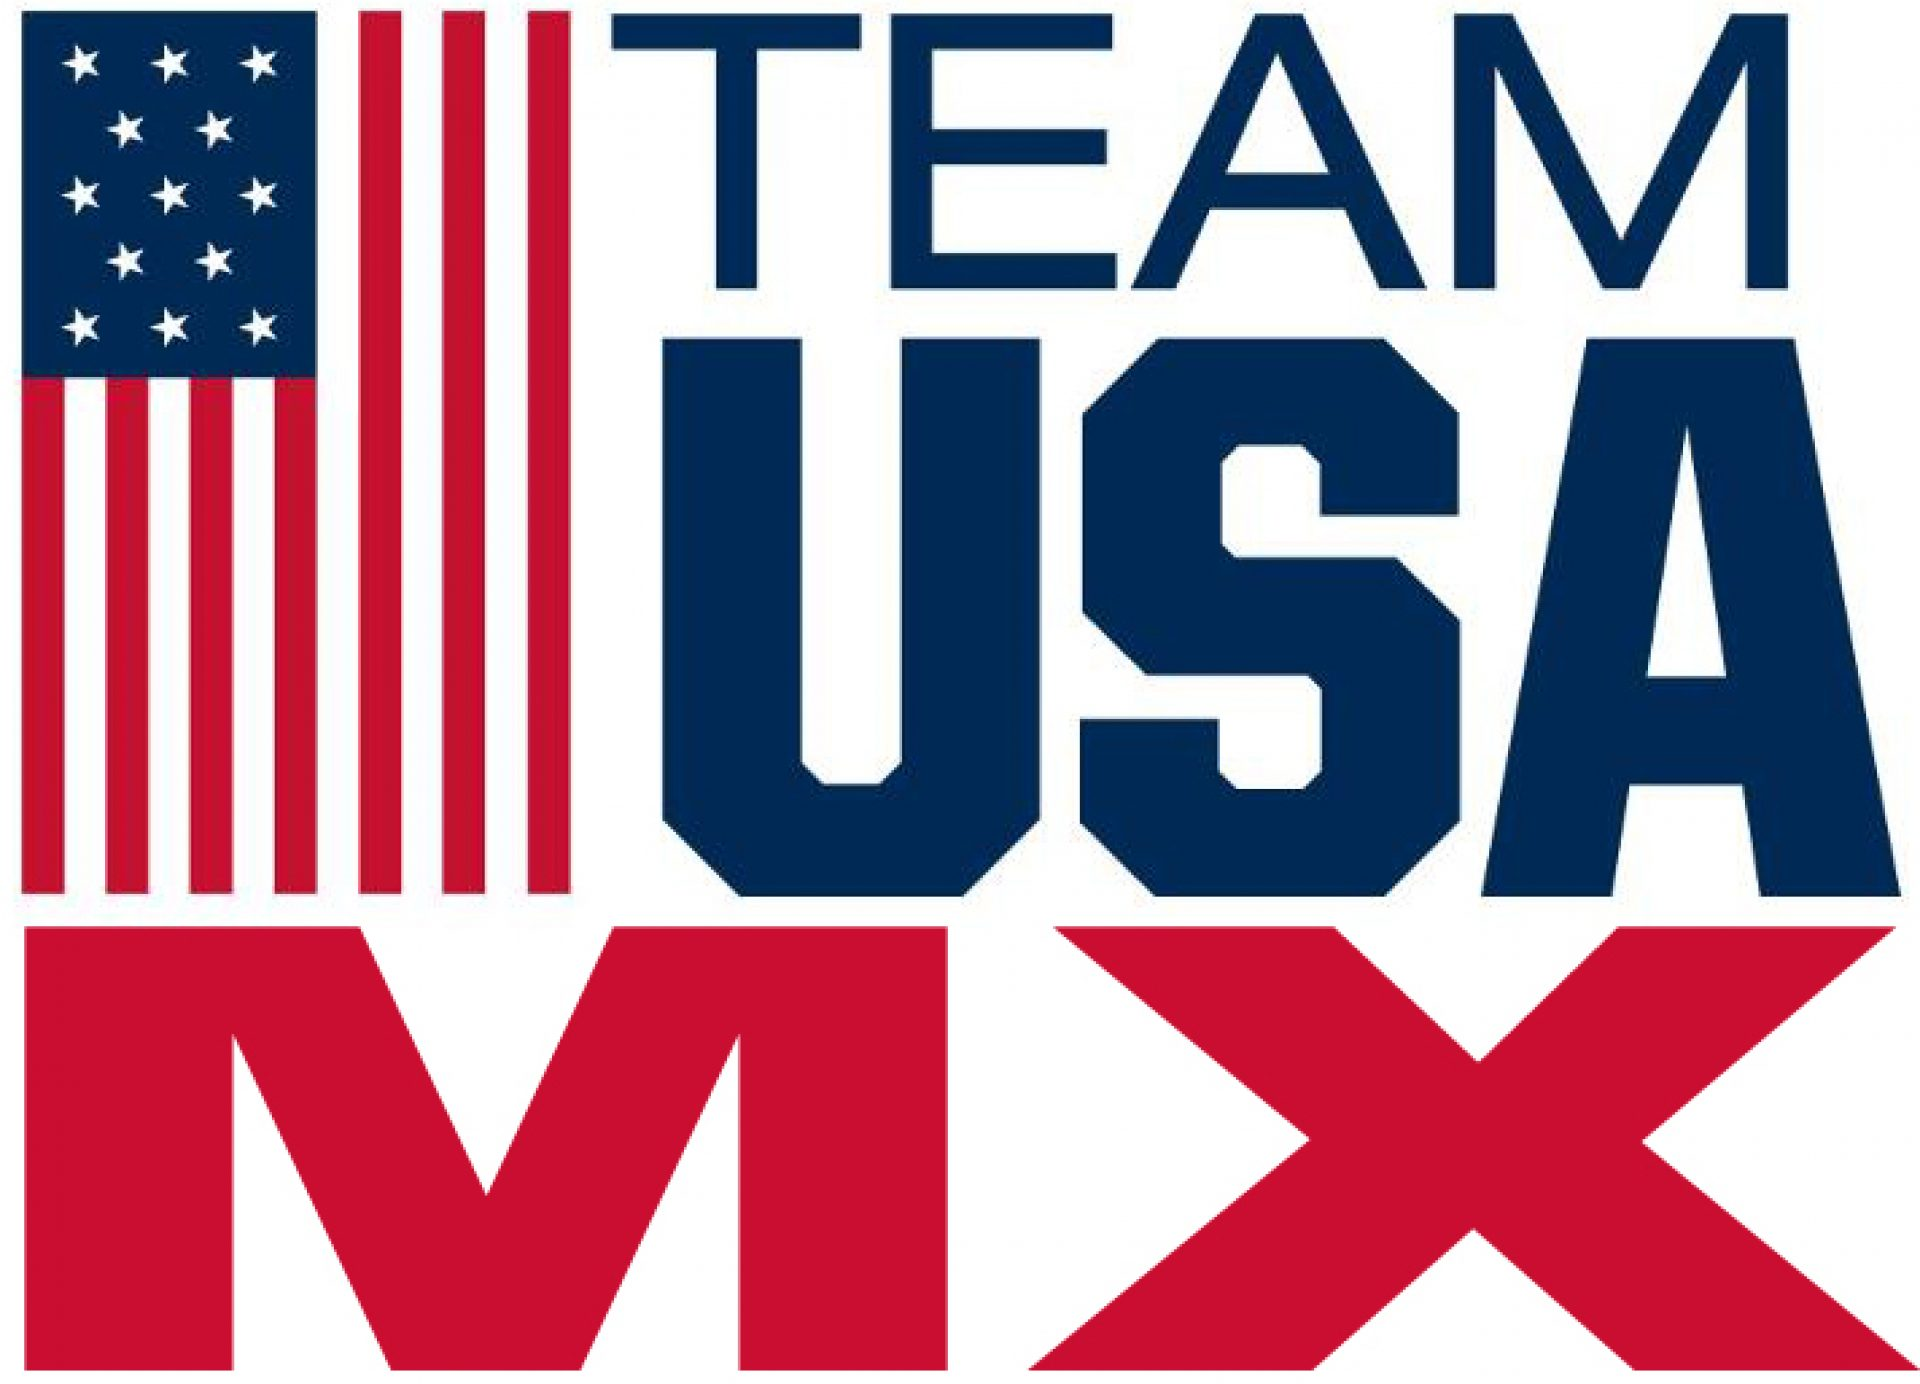 Welcome to Teamusamx.net